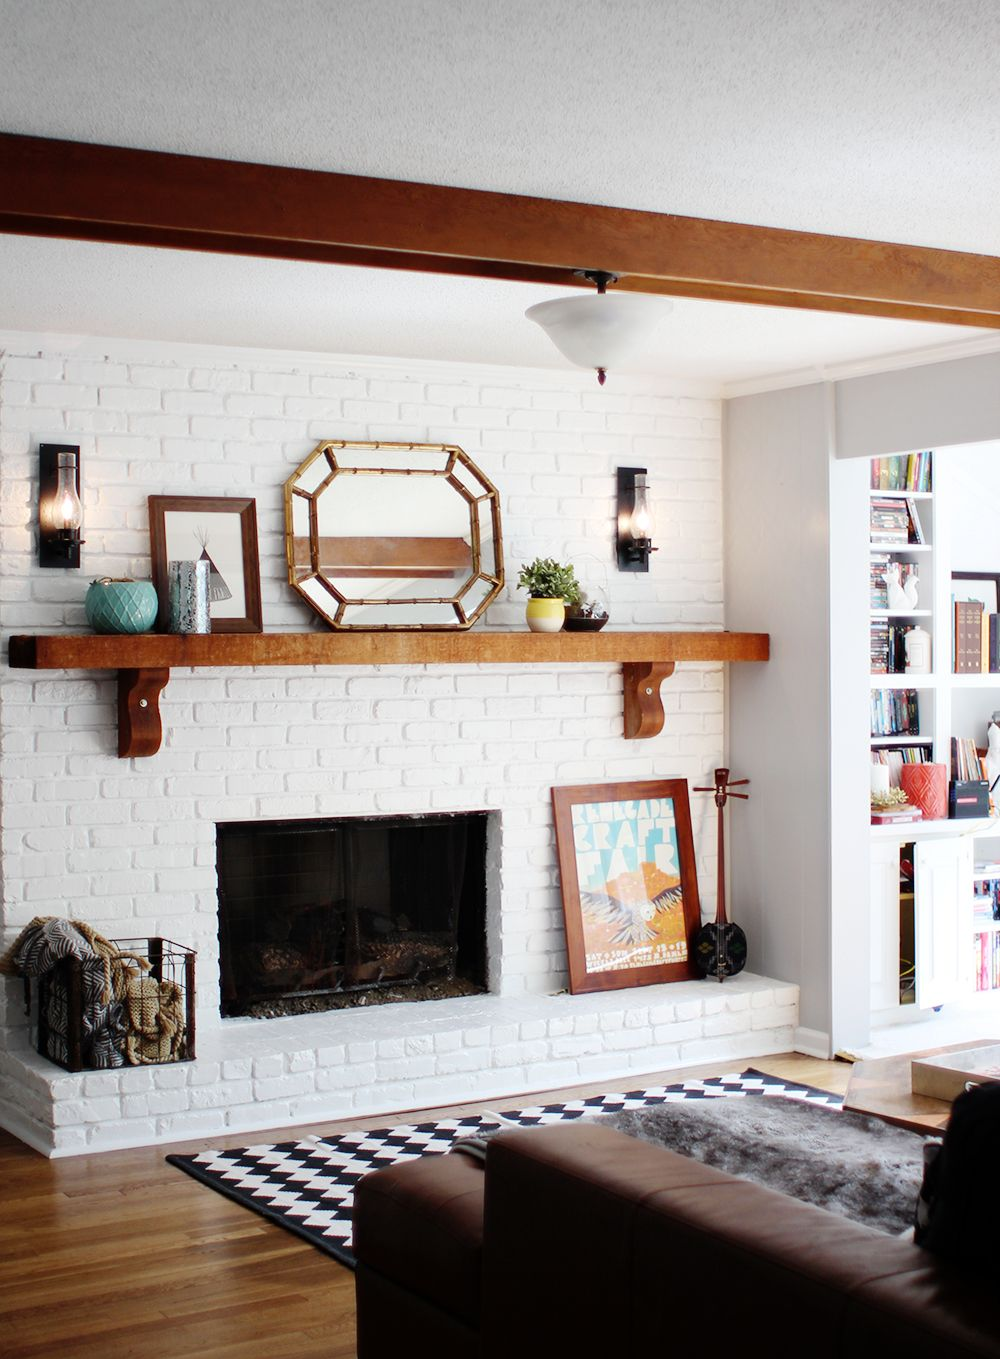 Ideas For Updating Your Home On A Budget Brick Fireplace Makeover Painted Brick Walls Home